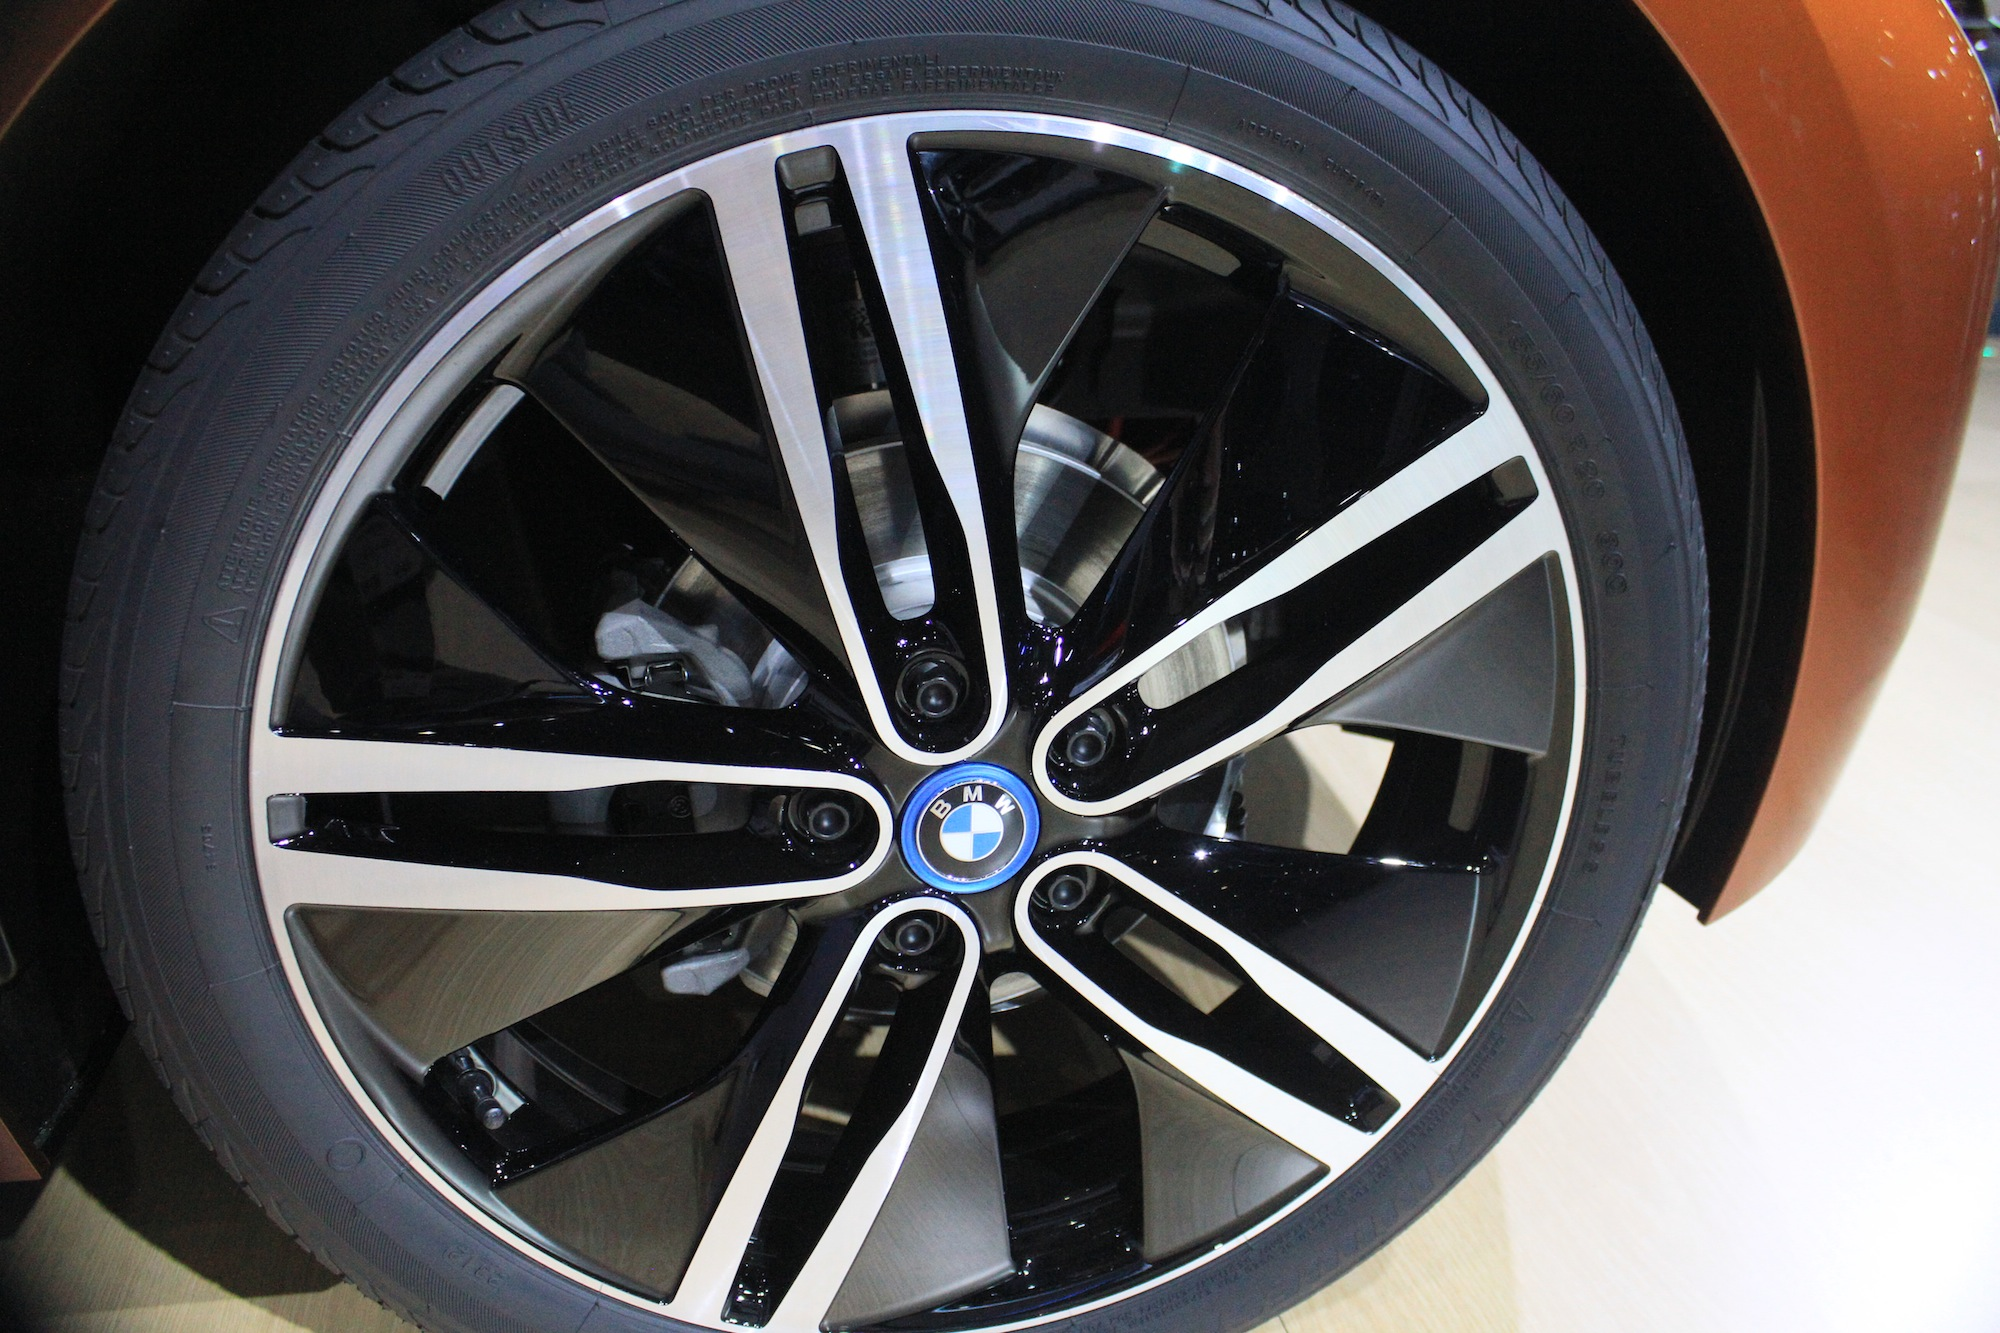 bmw i3 39 s tall skinny tires to boost efficiency and cut noise. Black Bedroom Furniture Sets. Home Design Ideas